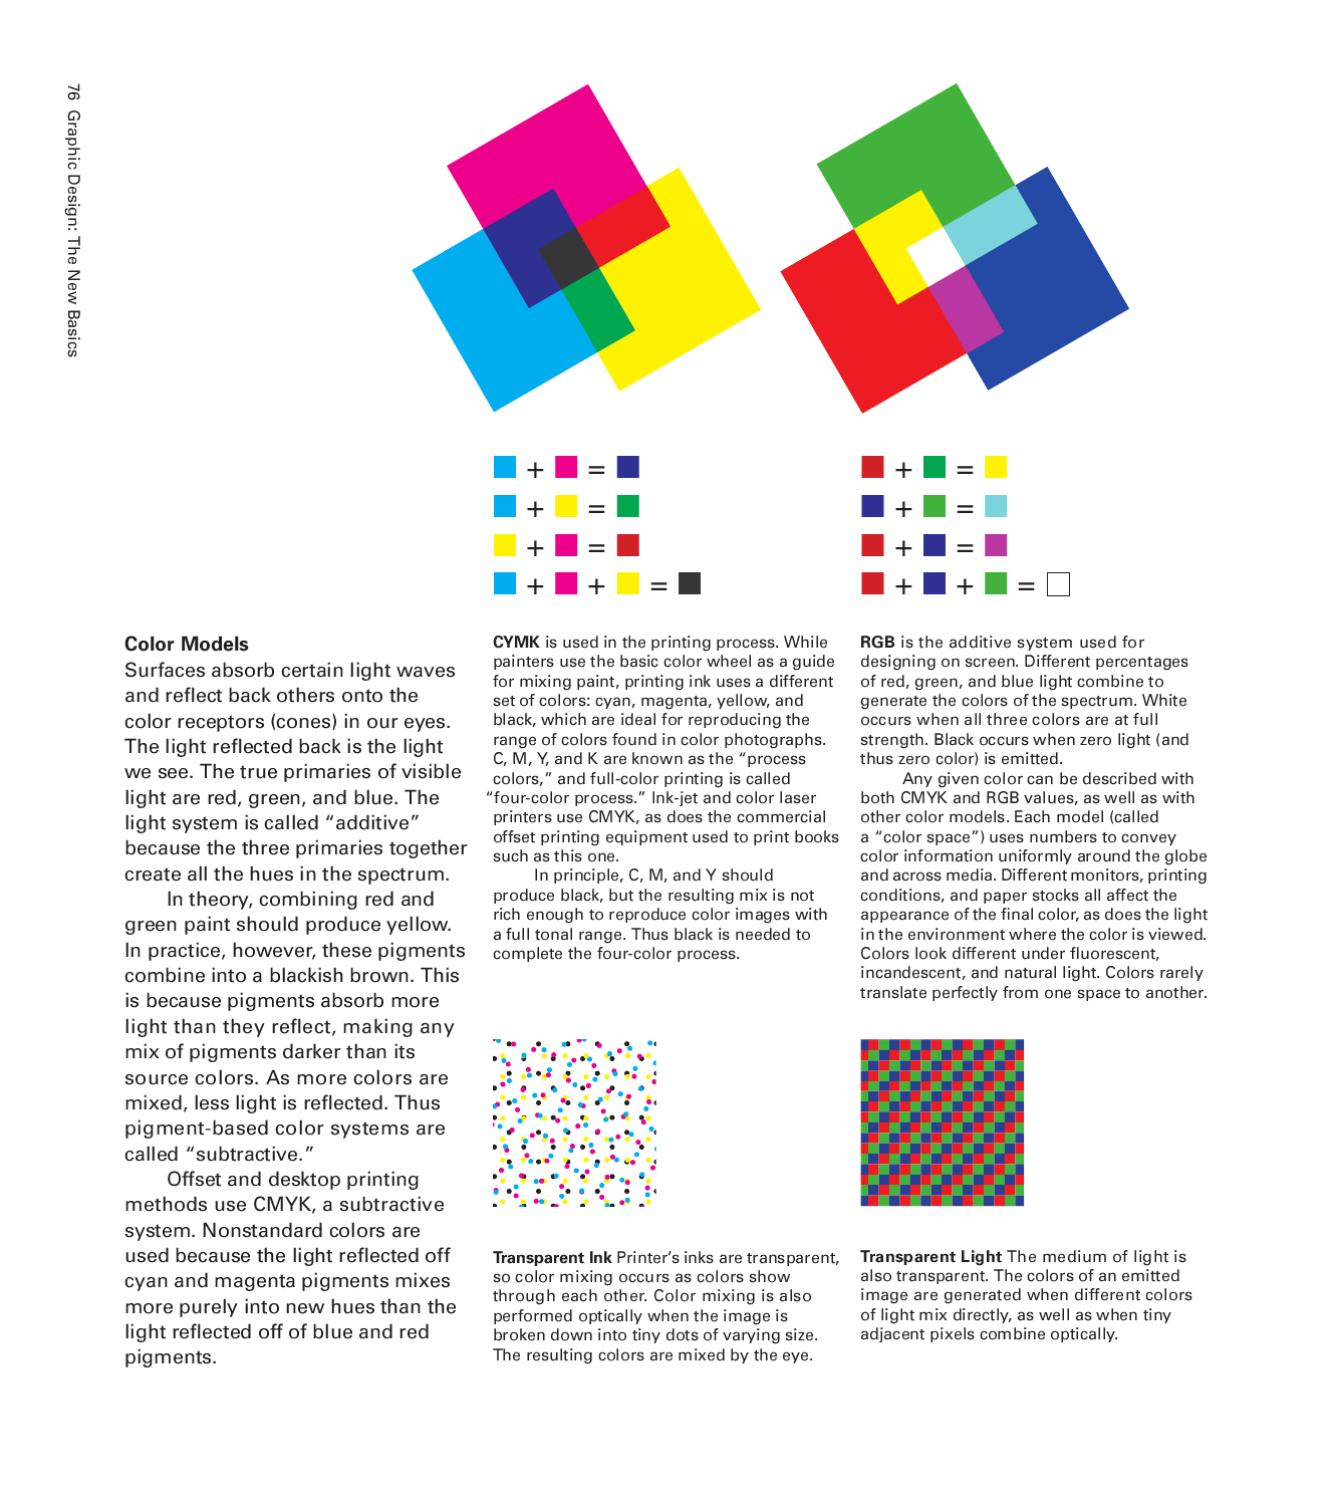 Graphic Design The New Basics By Princeton Architectural Press Issuu